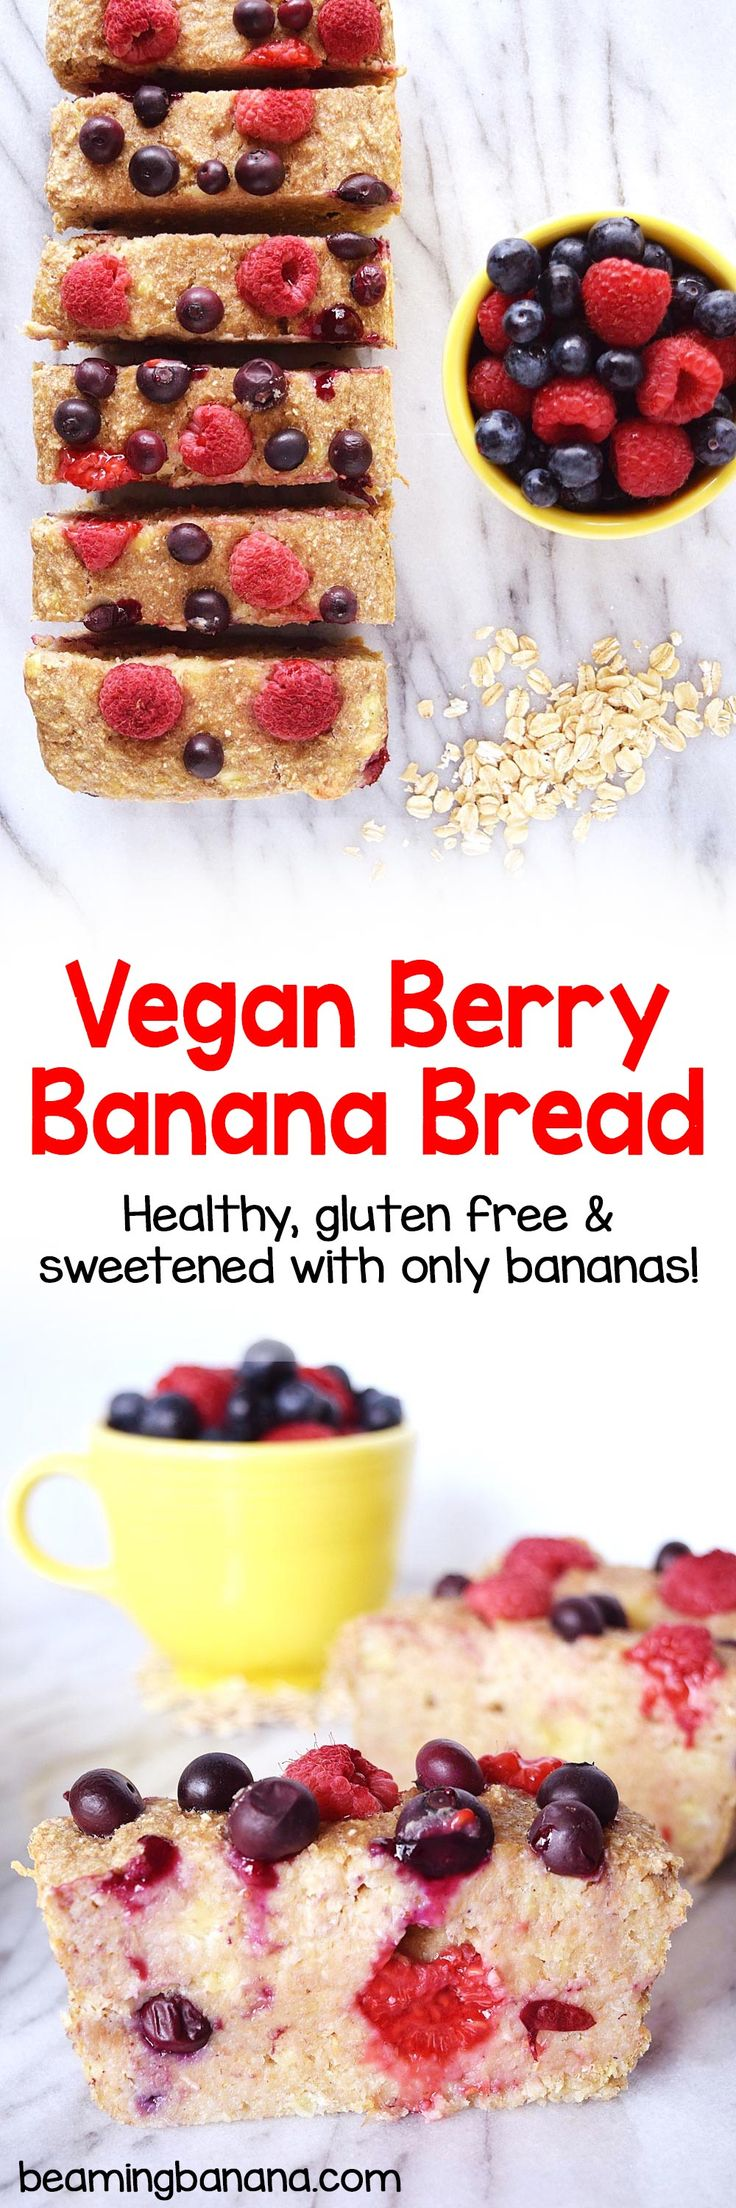 Oso Simple Squishy Banana : 25+ best ideas about Vegan banana bread on Pinterest Vegan bread, Simple banana bread and ...